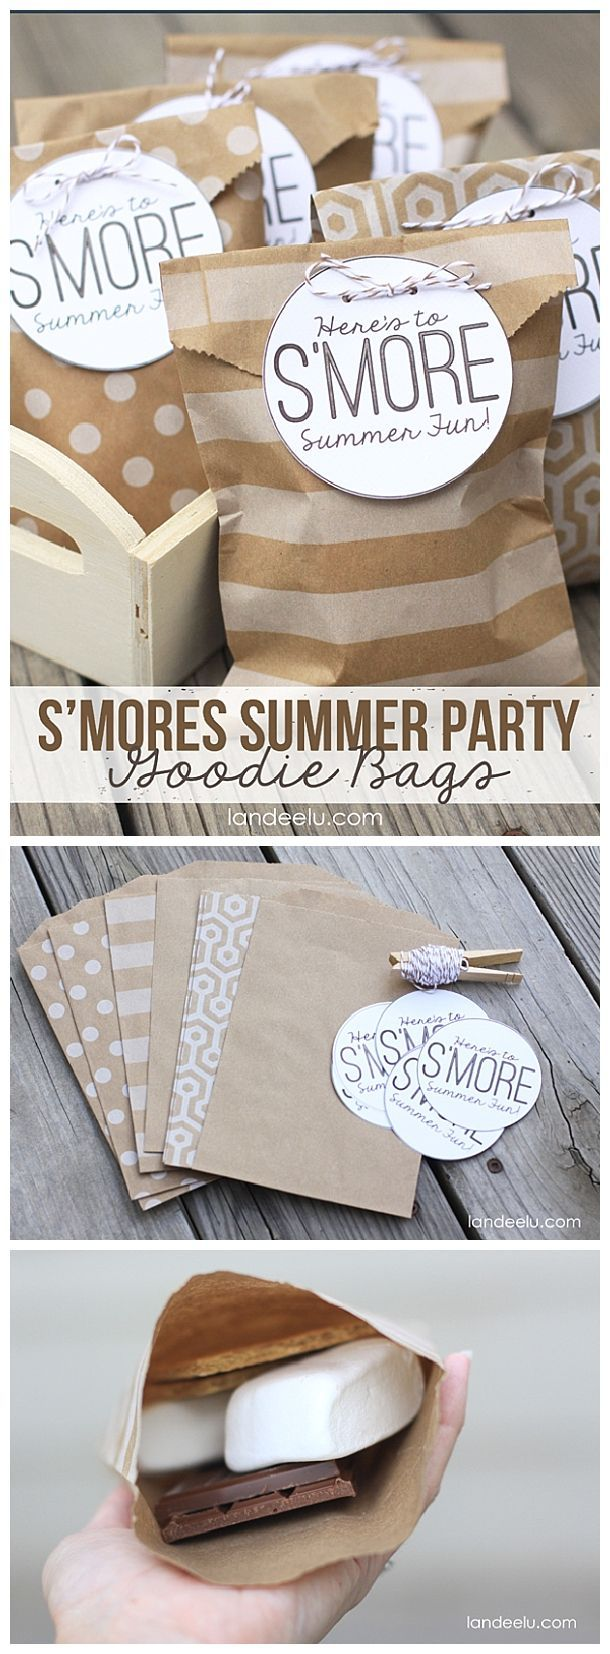 DIY S'Mores Summer Party Goodie Bags! EASY tutorial and FREE Printable Goodie Bag Tags from http://Landeelu.com